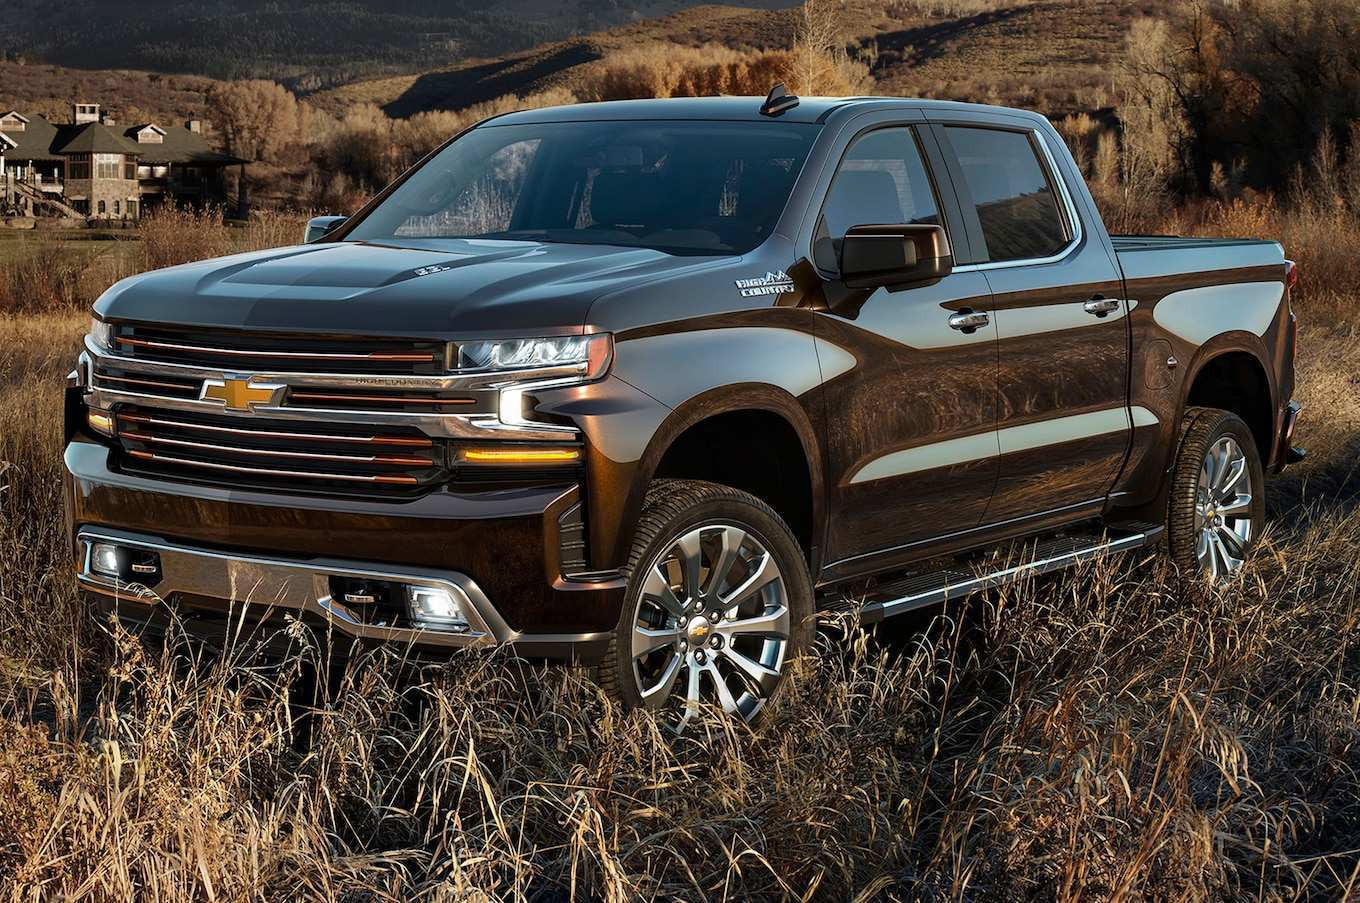 37 All New 2019 Chevrolet 1500 Review And Release Date